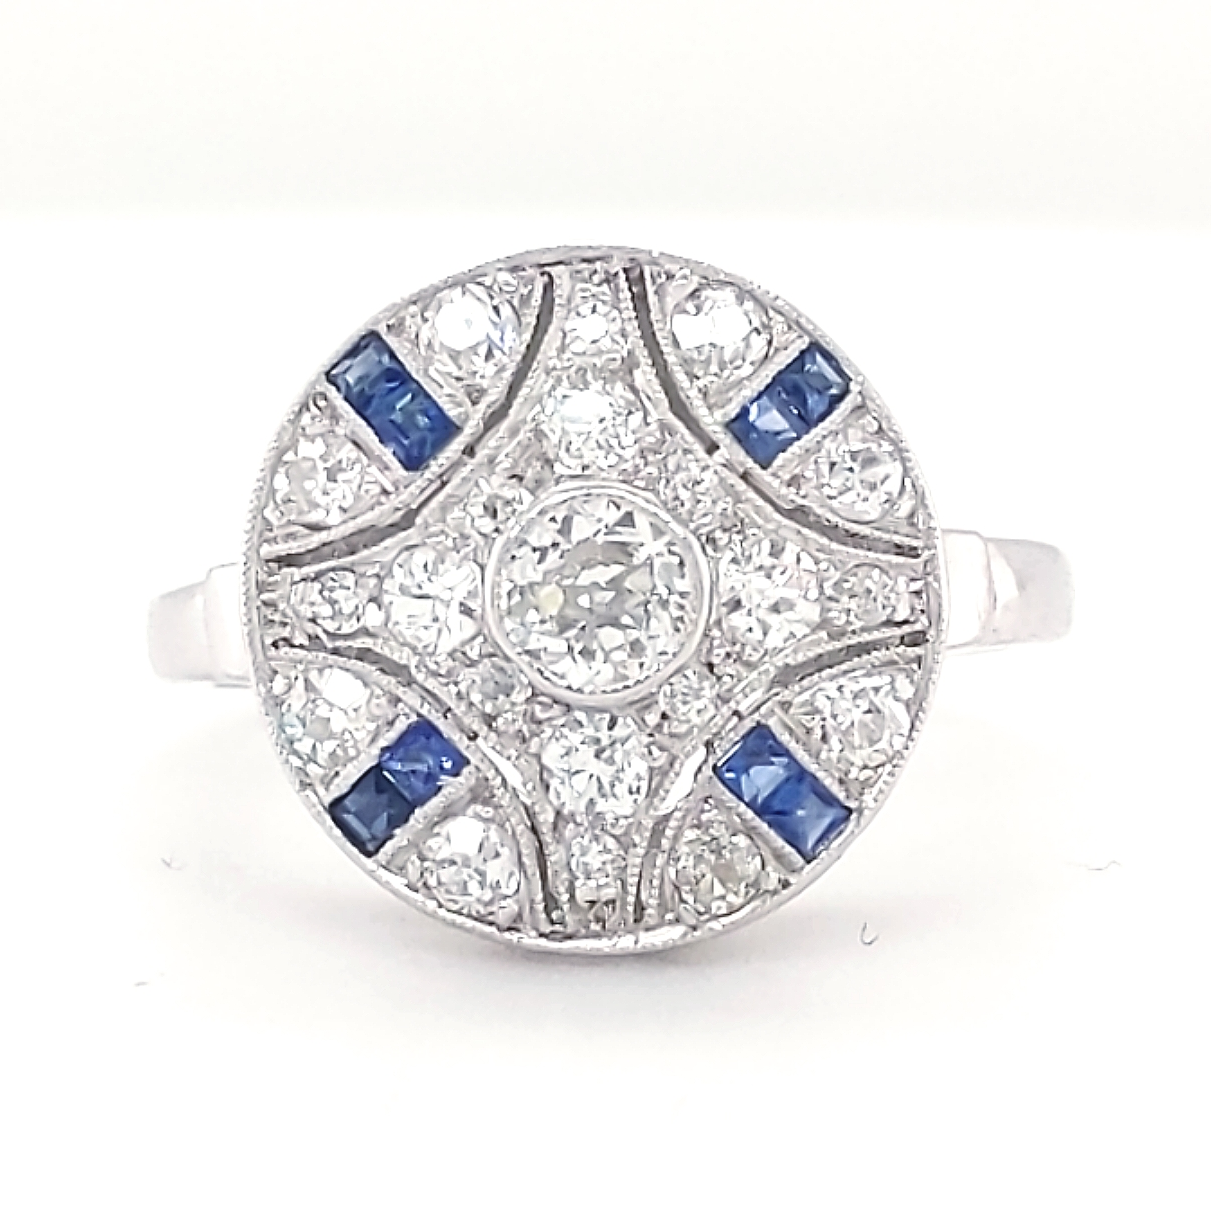 14K White Gold .50ctw Diamond & Sapphire Fashion Ring finger size 7